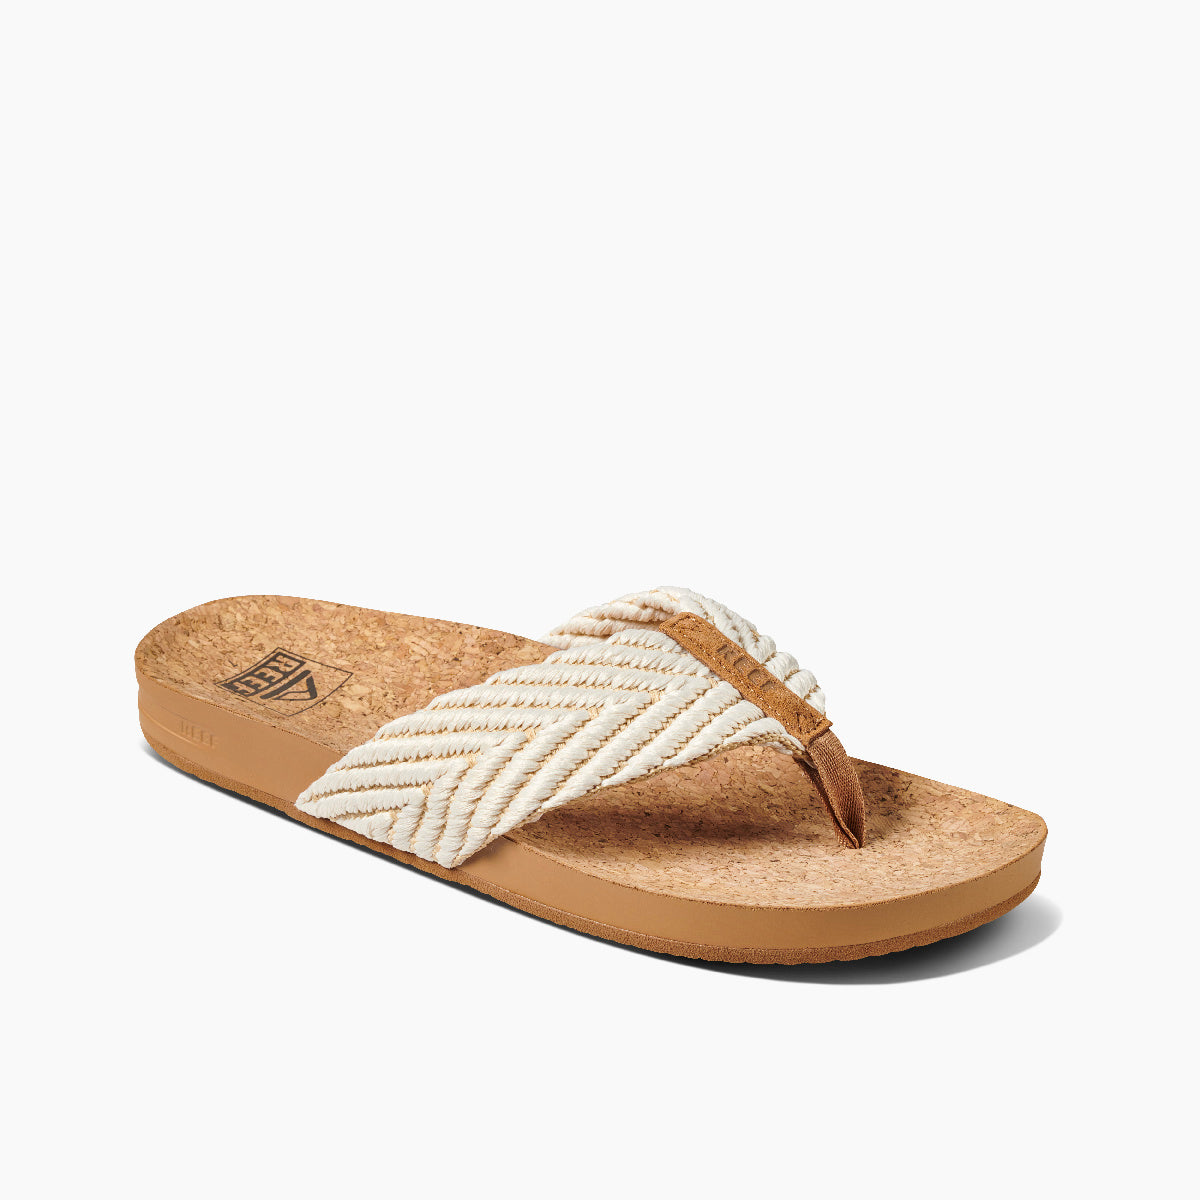 Reef Women's Cushion Strand Flip Flops - Vintage